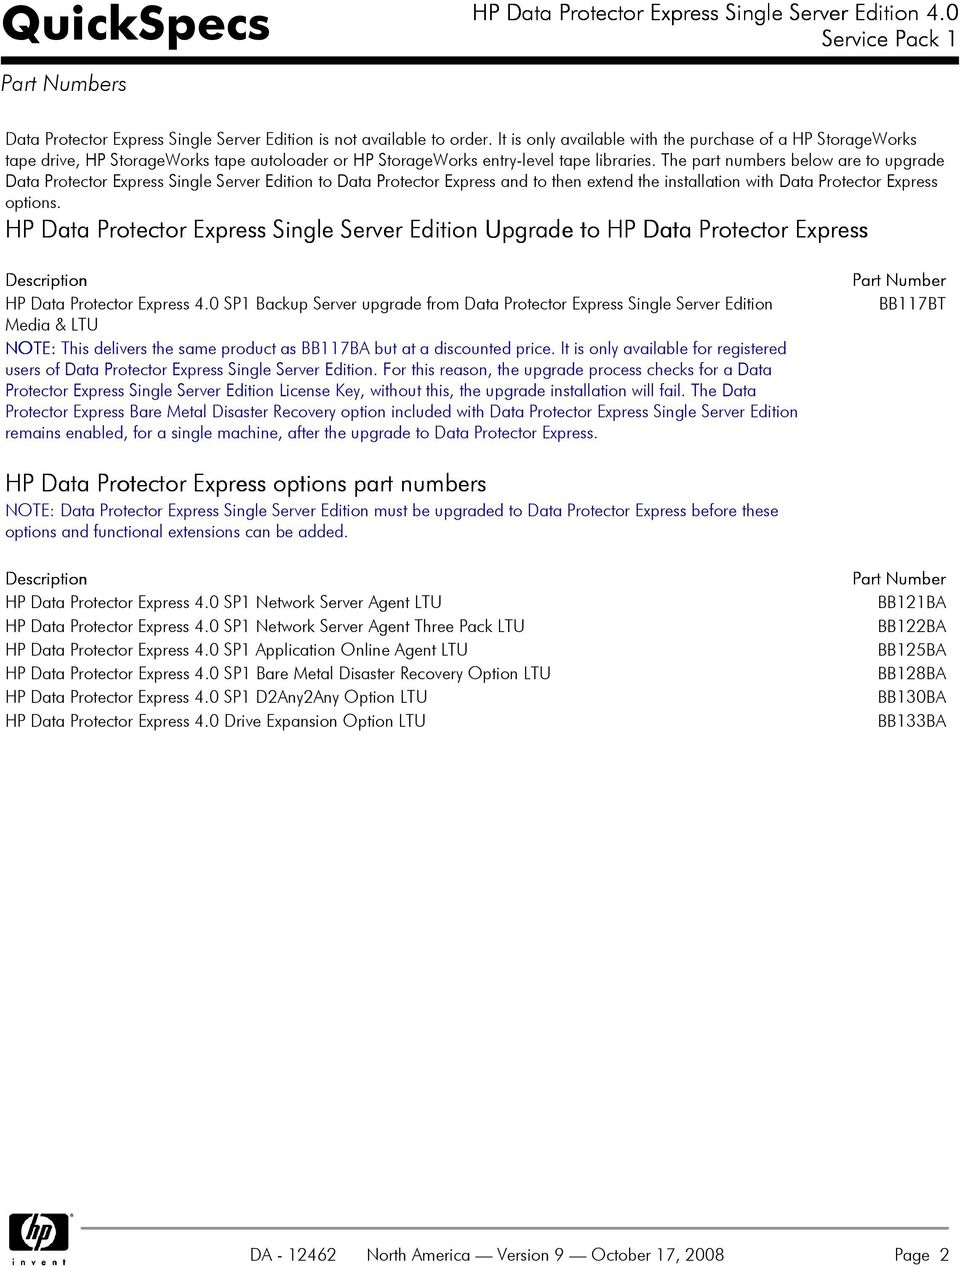 The part numbers below are to upgrade Data Protector Express Single Server Edition to Data Protector Express and to then extend the installation with Data Protector Express options.